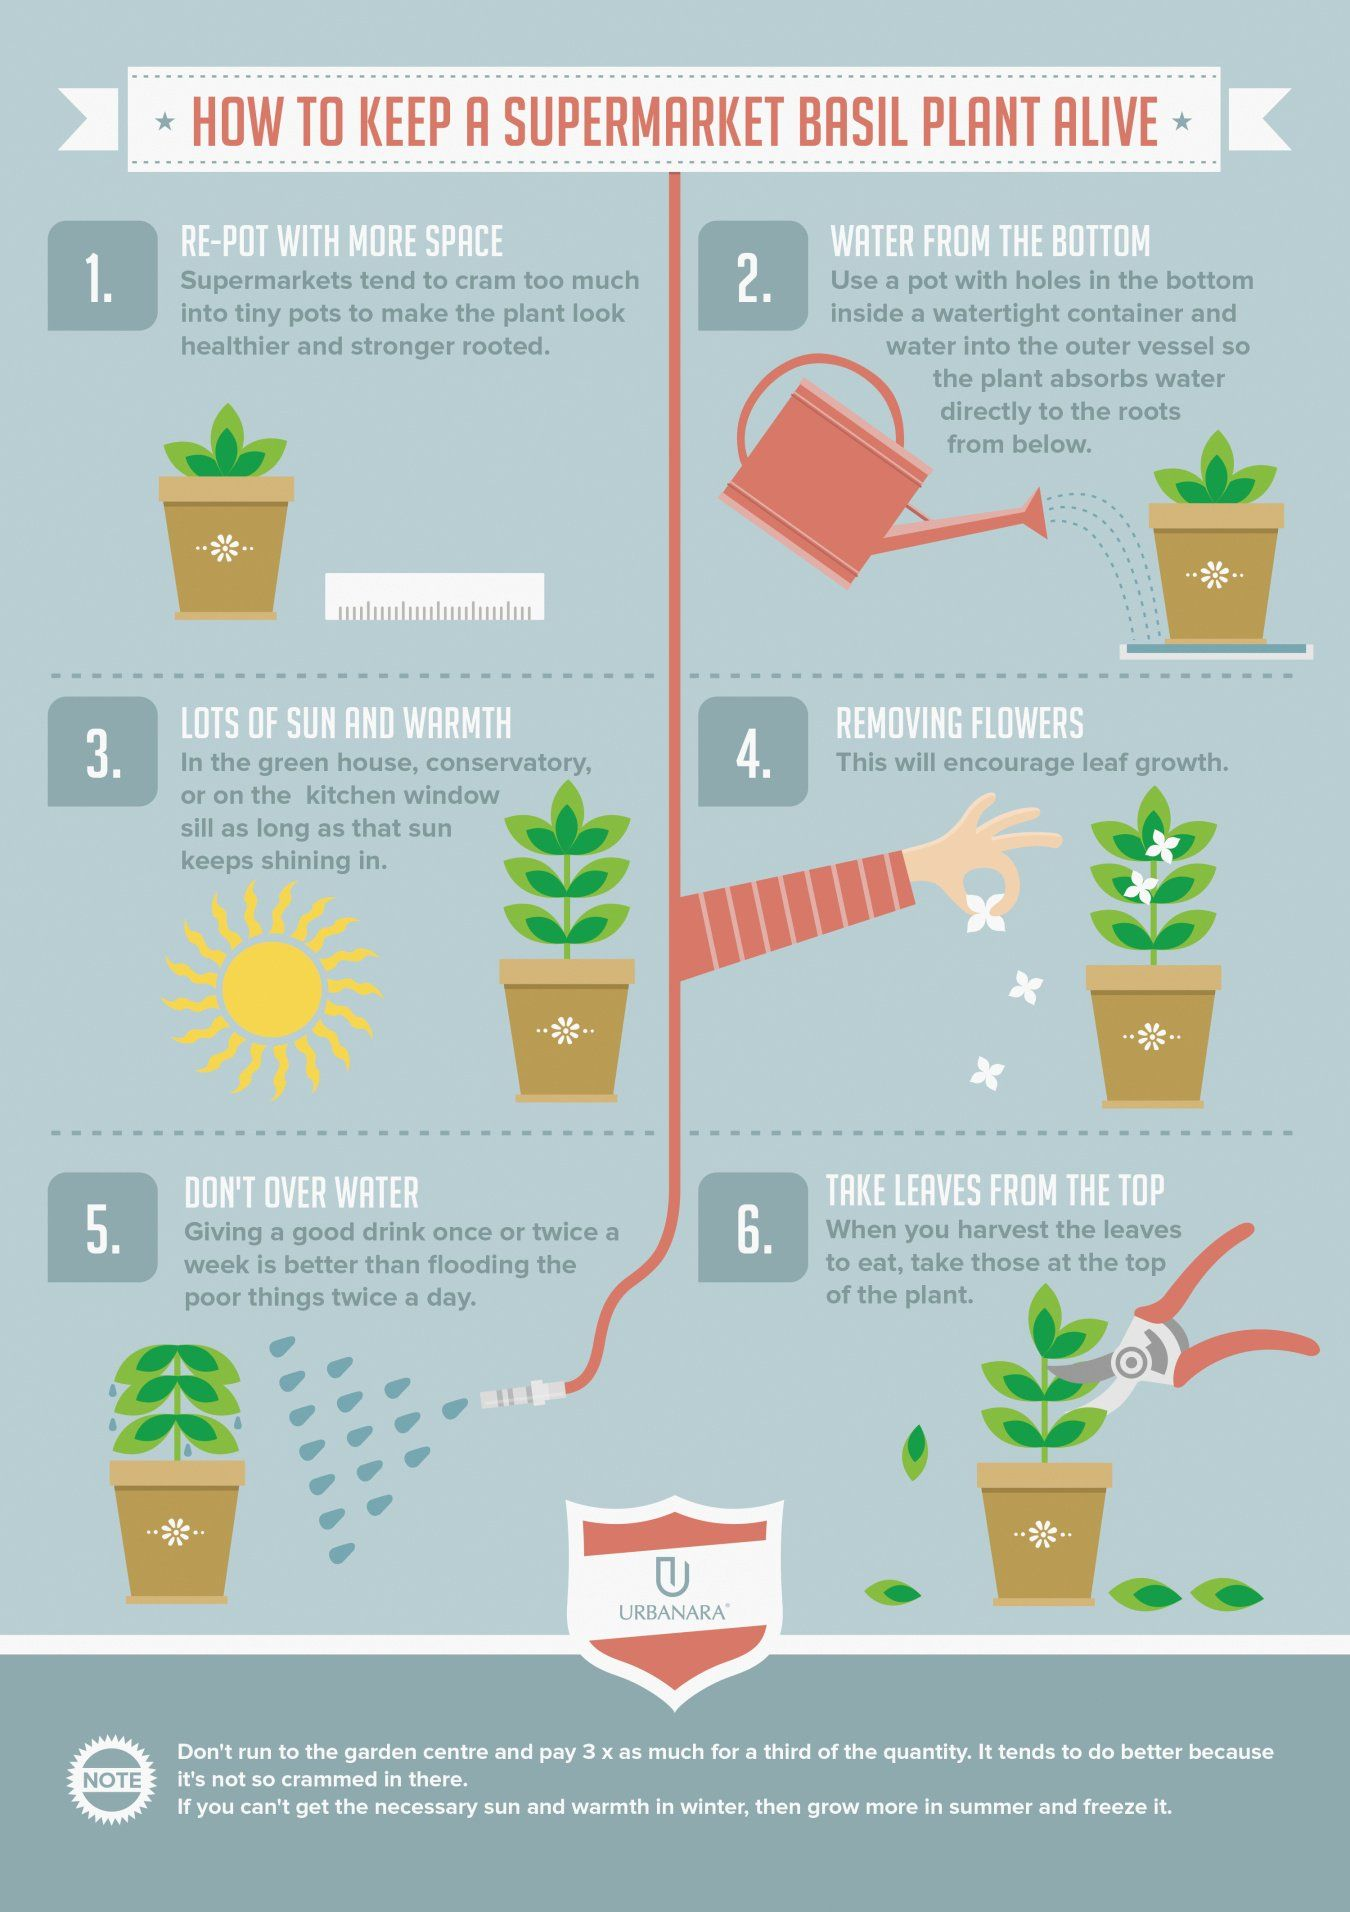 infographic about how to take care of a basil plant alive back